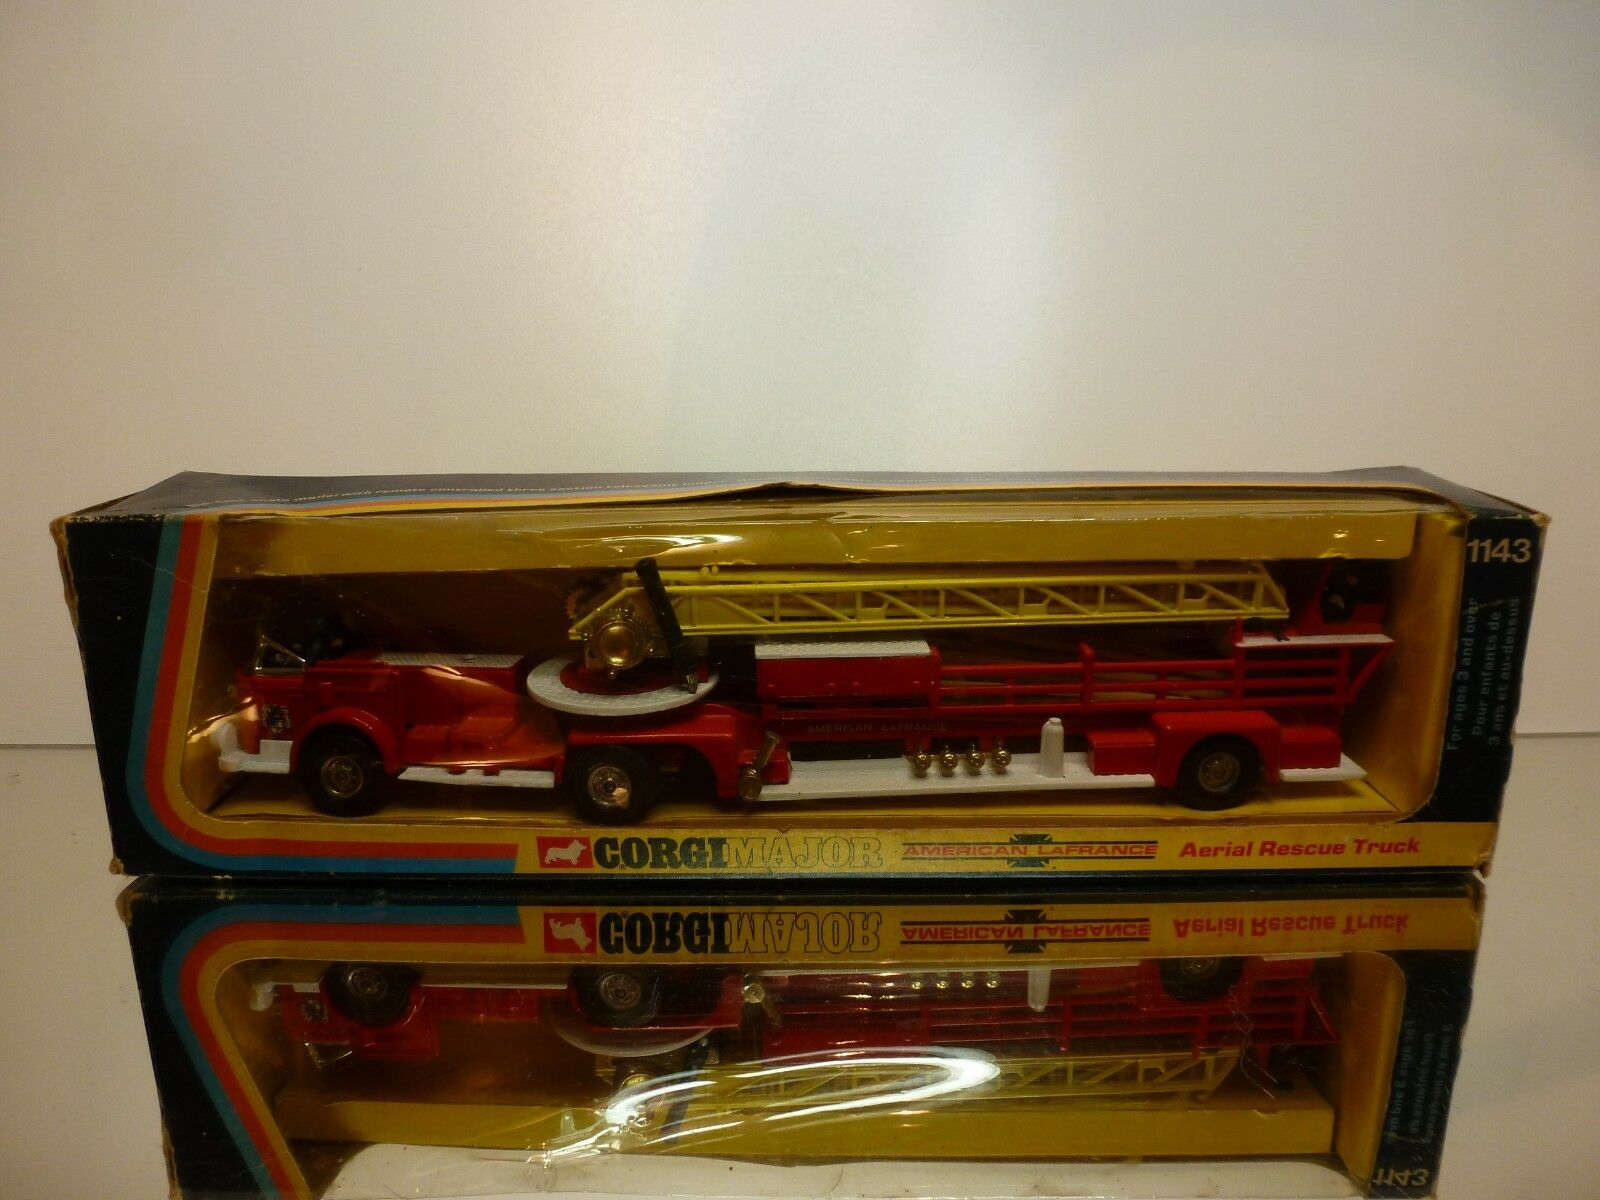 CORGI TOYS 1143 AERIAL RESCUE TRUCK - AMERICAN LaFRANCE - VERY GOOD IN BOX